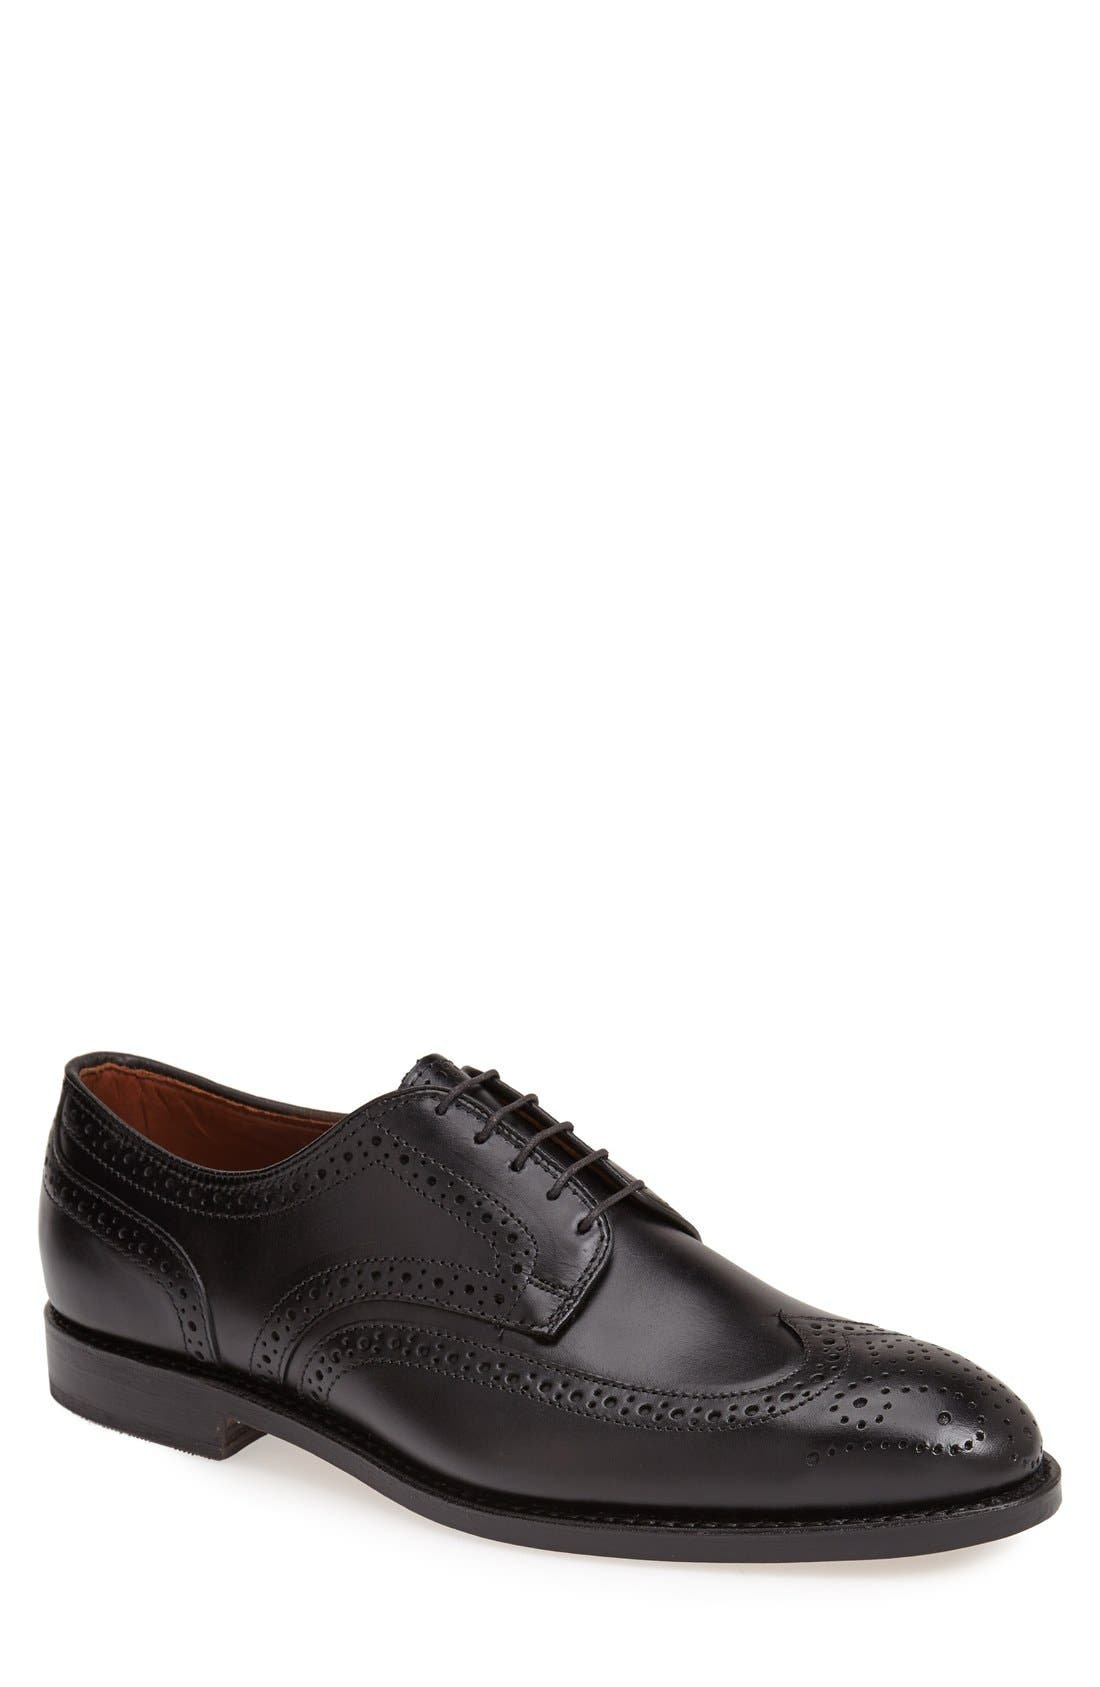 Main Image - Allen Edmonds 'Players' Wingtip (Men)